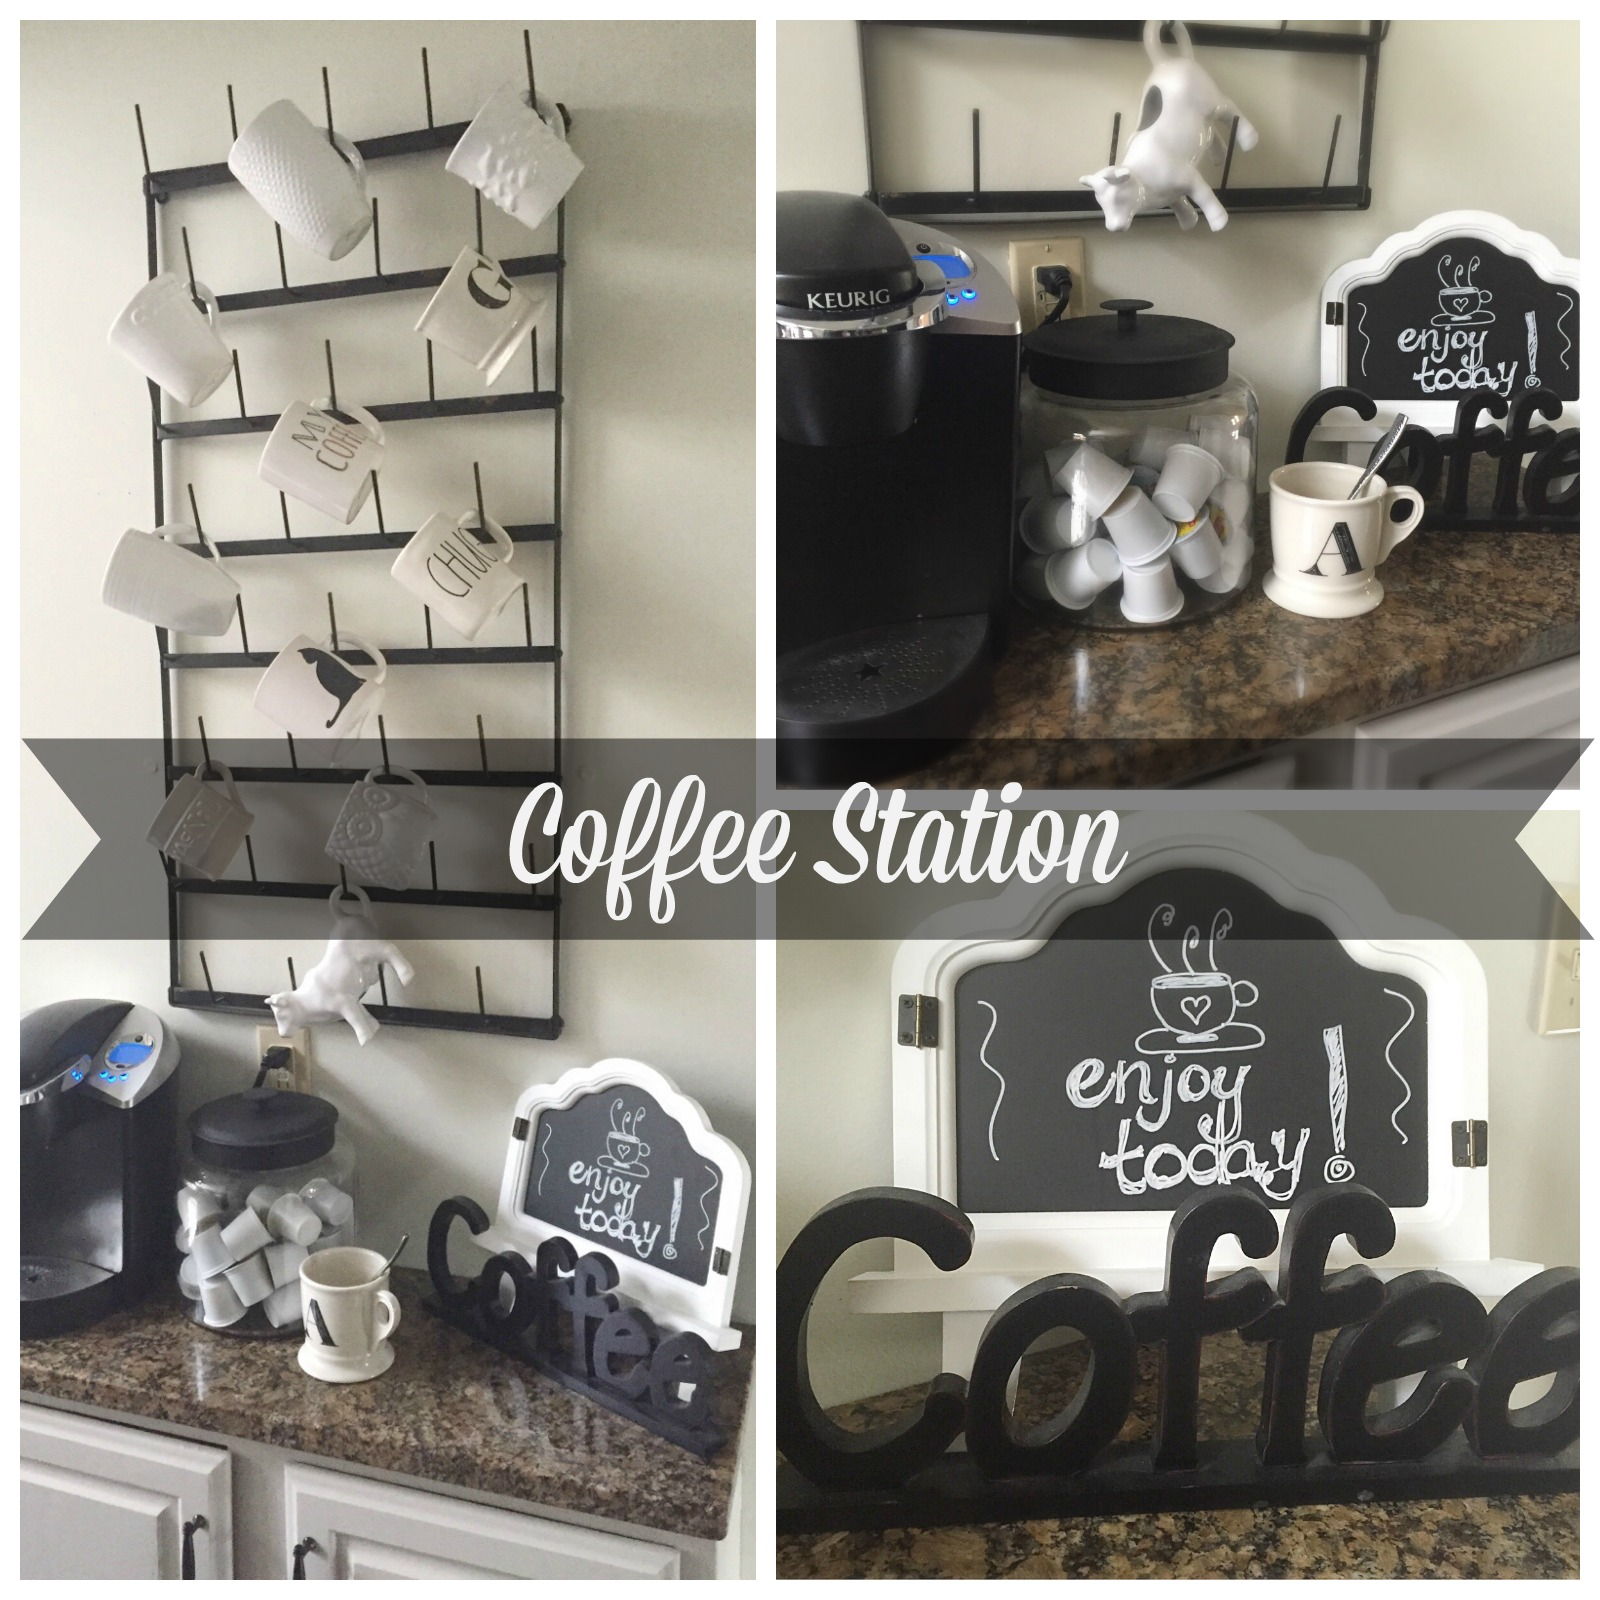 Coffee Station by My Life From Home www.mylifefromhome.com